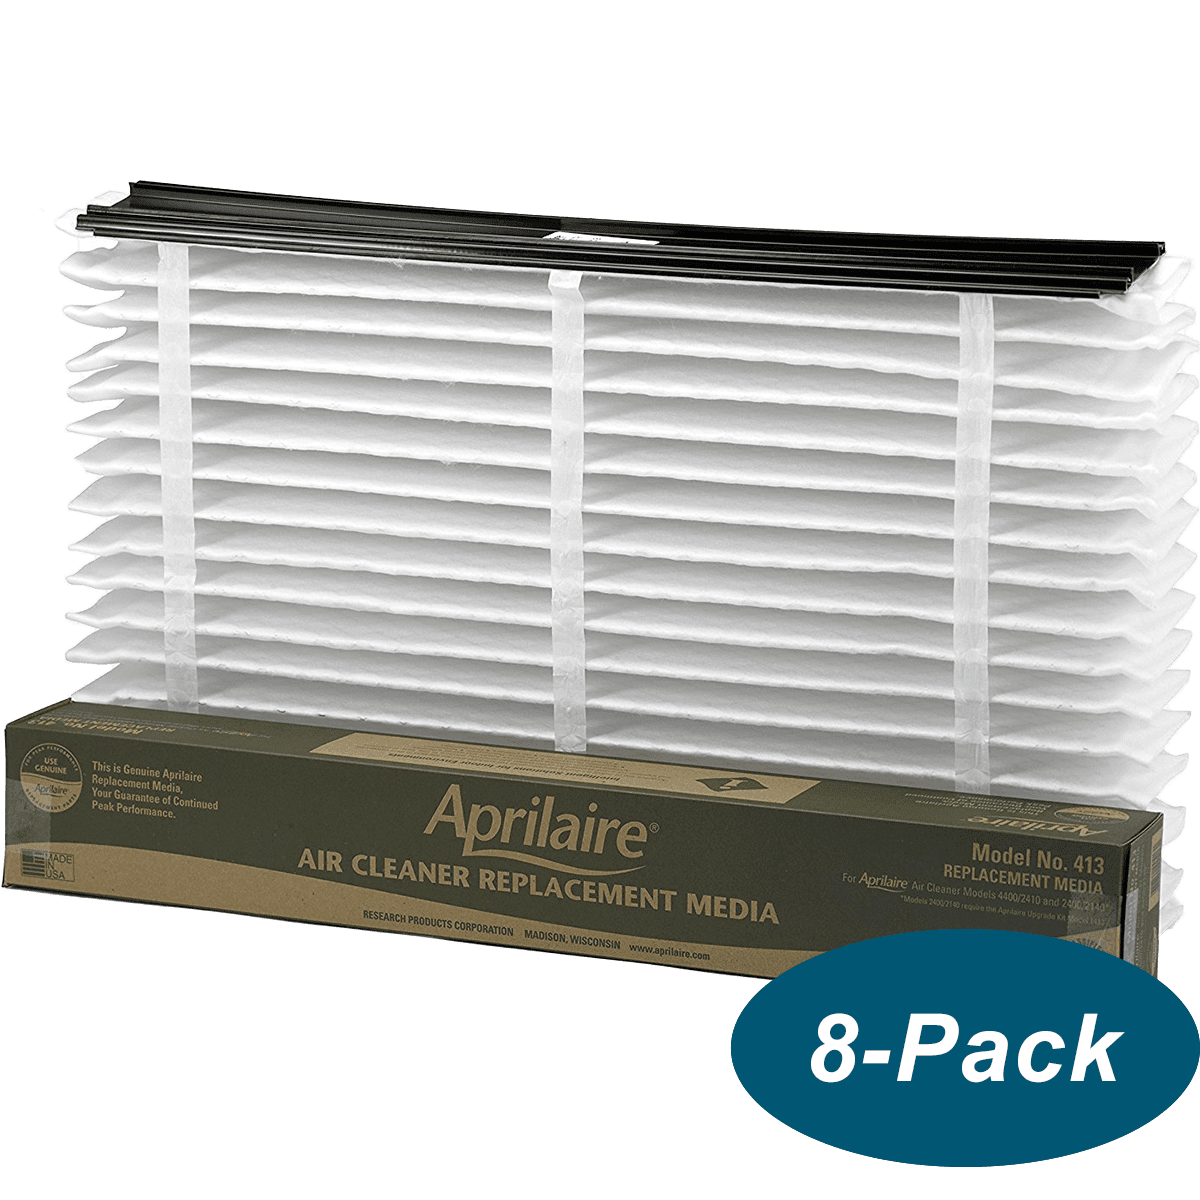 Image of Aprilaire 413 Air Filter (merv-13) - 8-pack